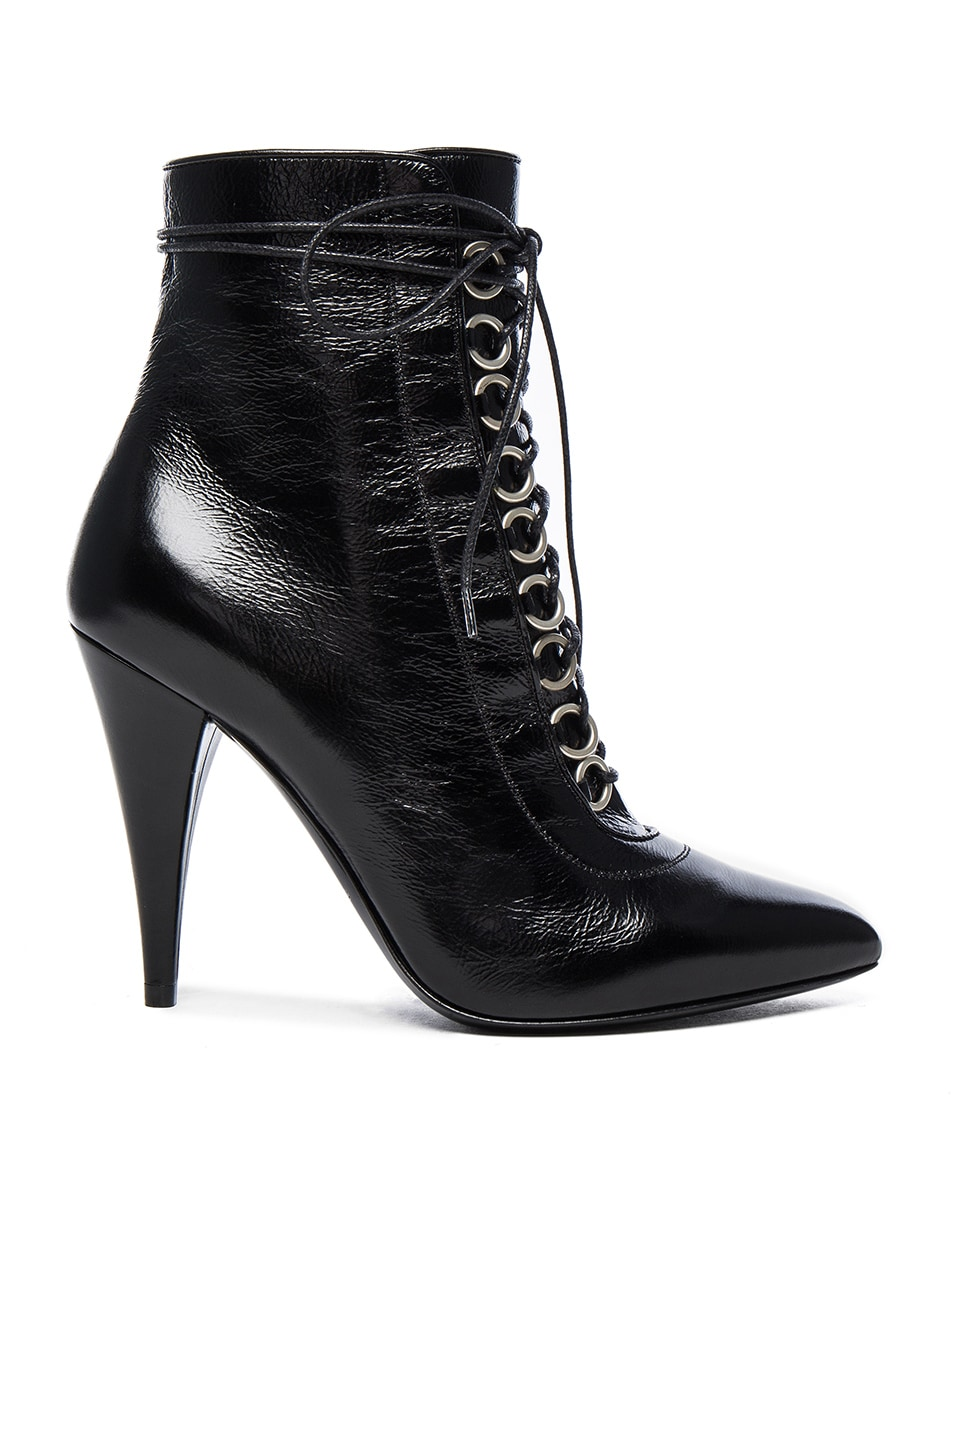 Image 1 of Saint Laurent Fetish Leather Booties in Black